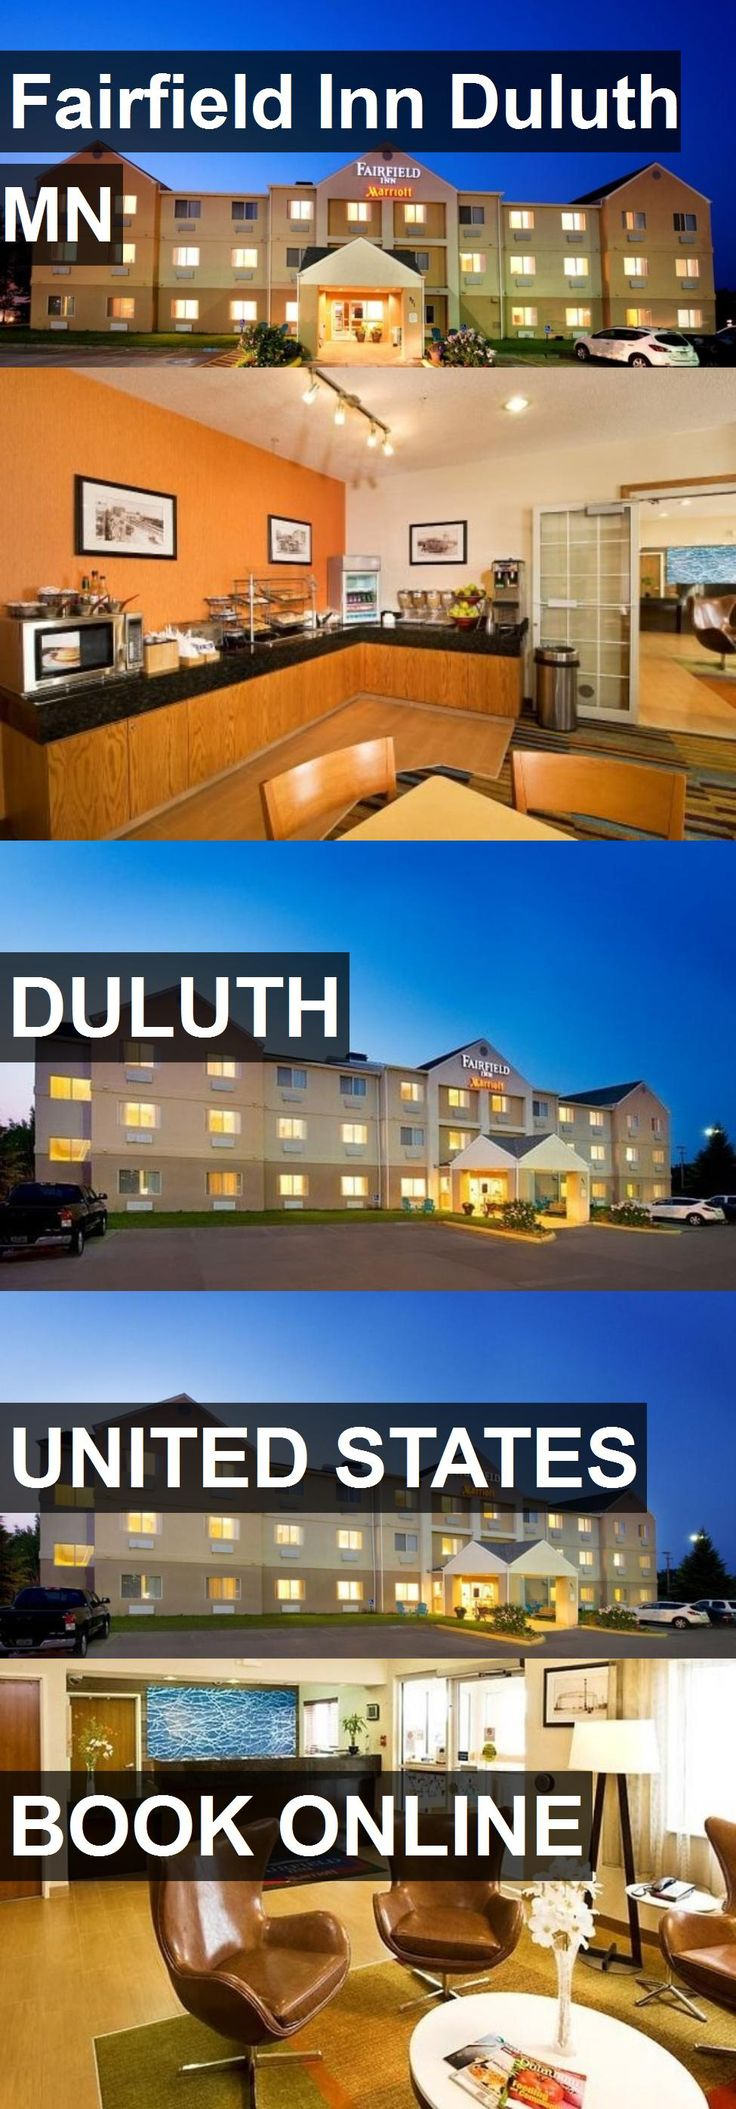 Hotel Fairfield Inn Duluth MN in Duluth, United States. For more information, photos, reviews and best prices please follow the link. #UnitedStates #Duluth #travel #vacation #hotel